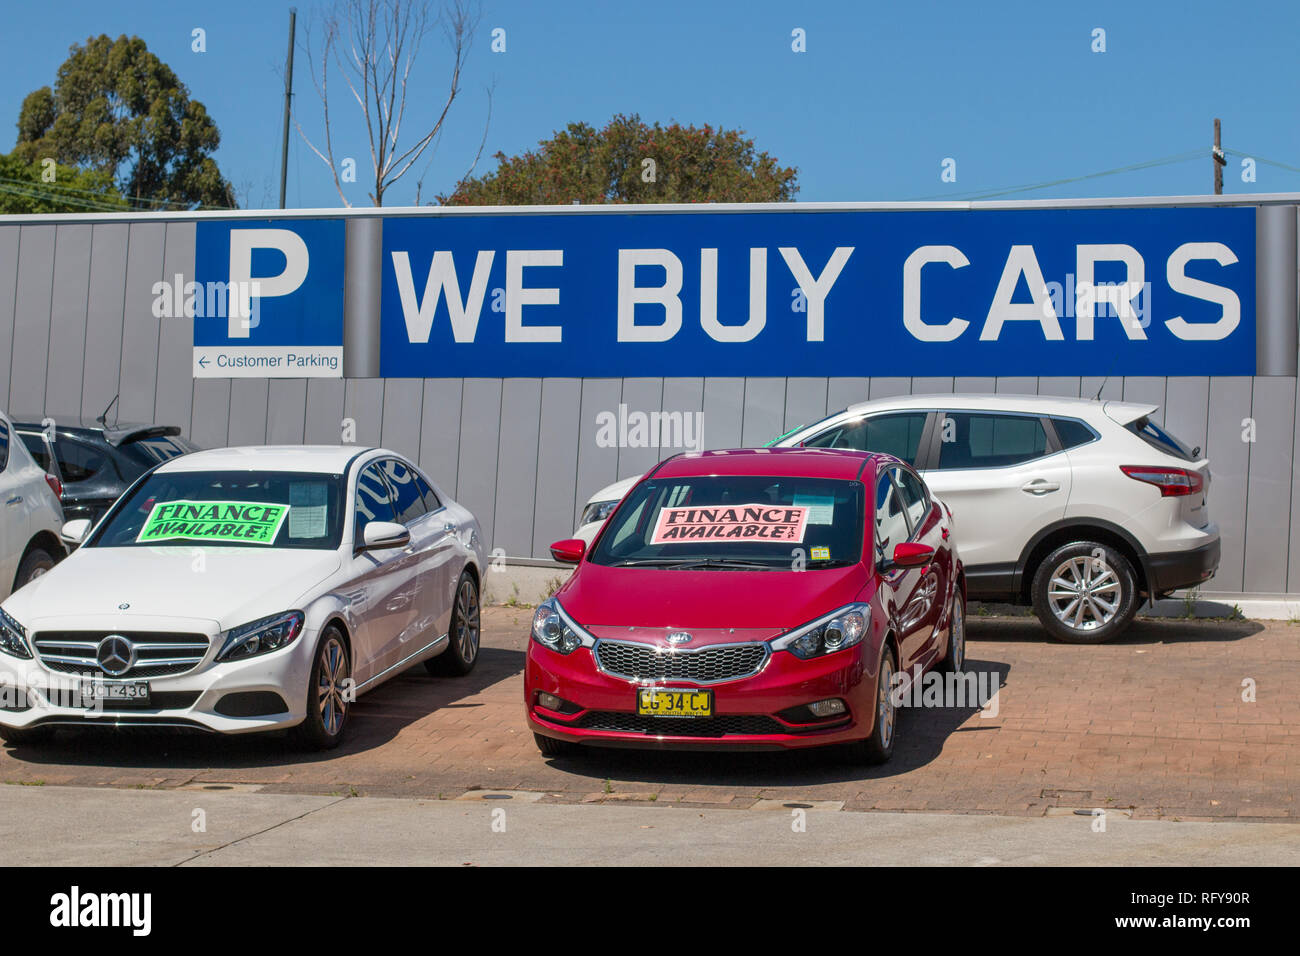 43e039ace0 Used Cars For Sale Stock Photos   Used Cars For Sale Stock Images ...